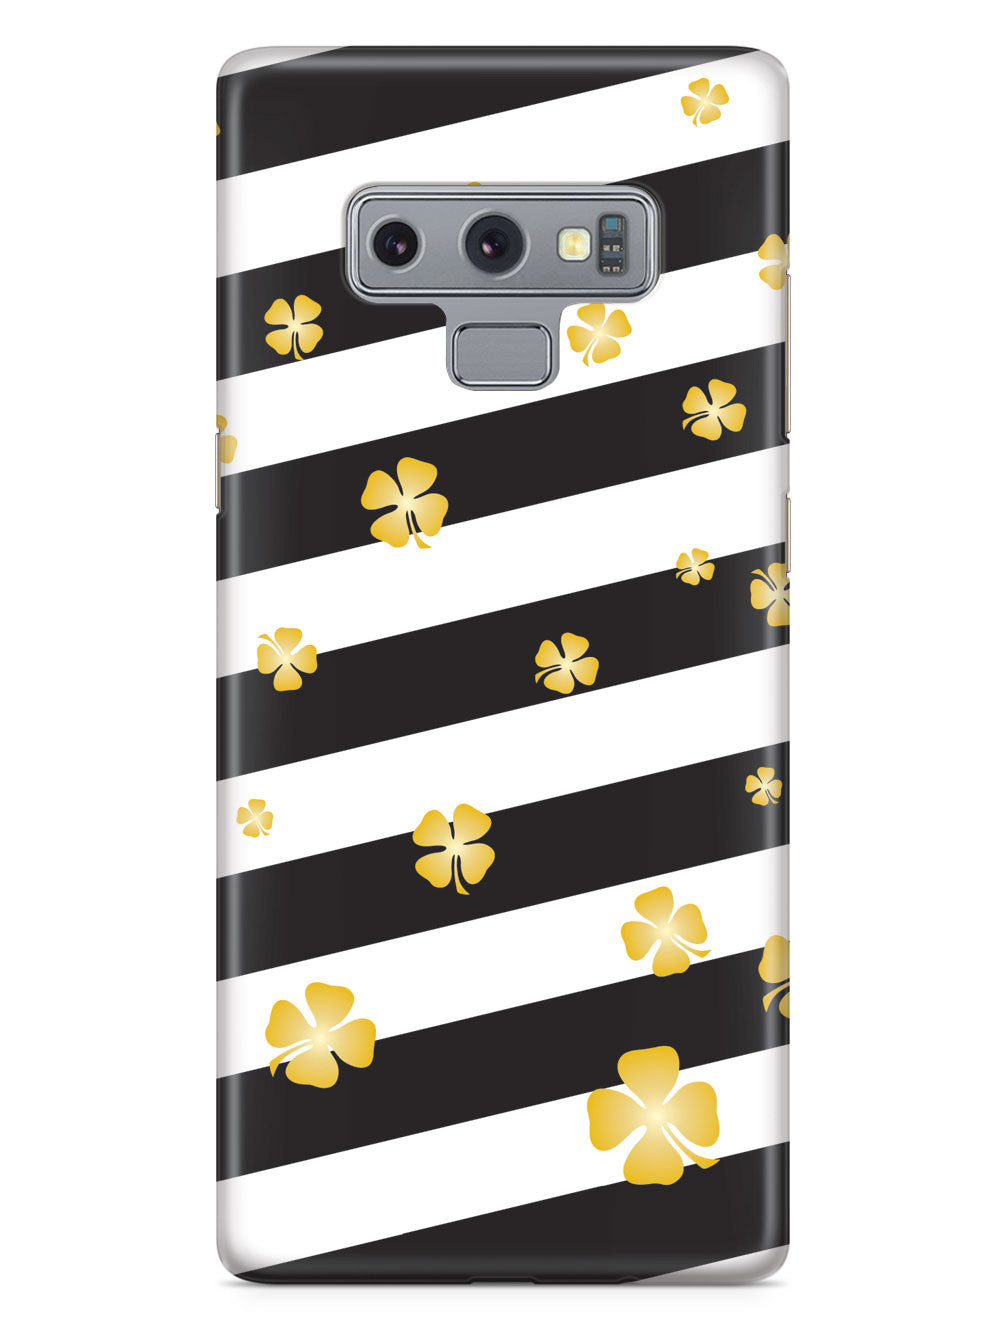 Striped Clover Pattern - Lucky St. Patrick's Day Case